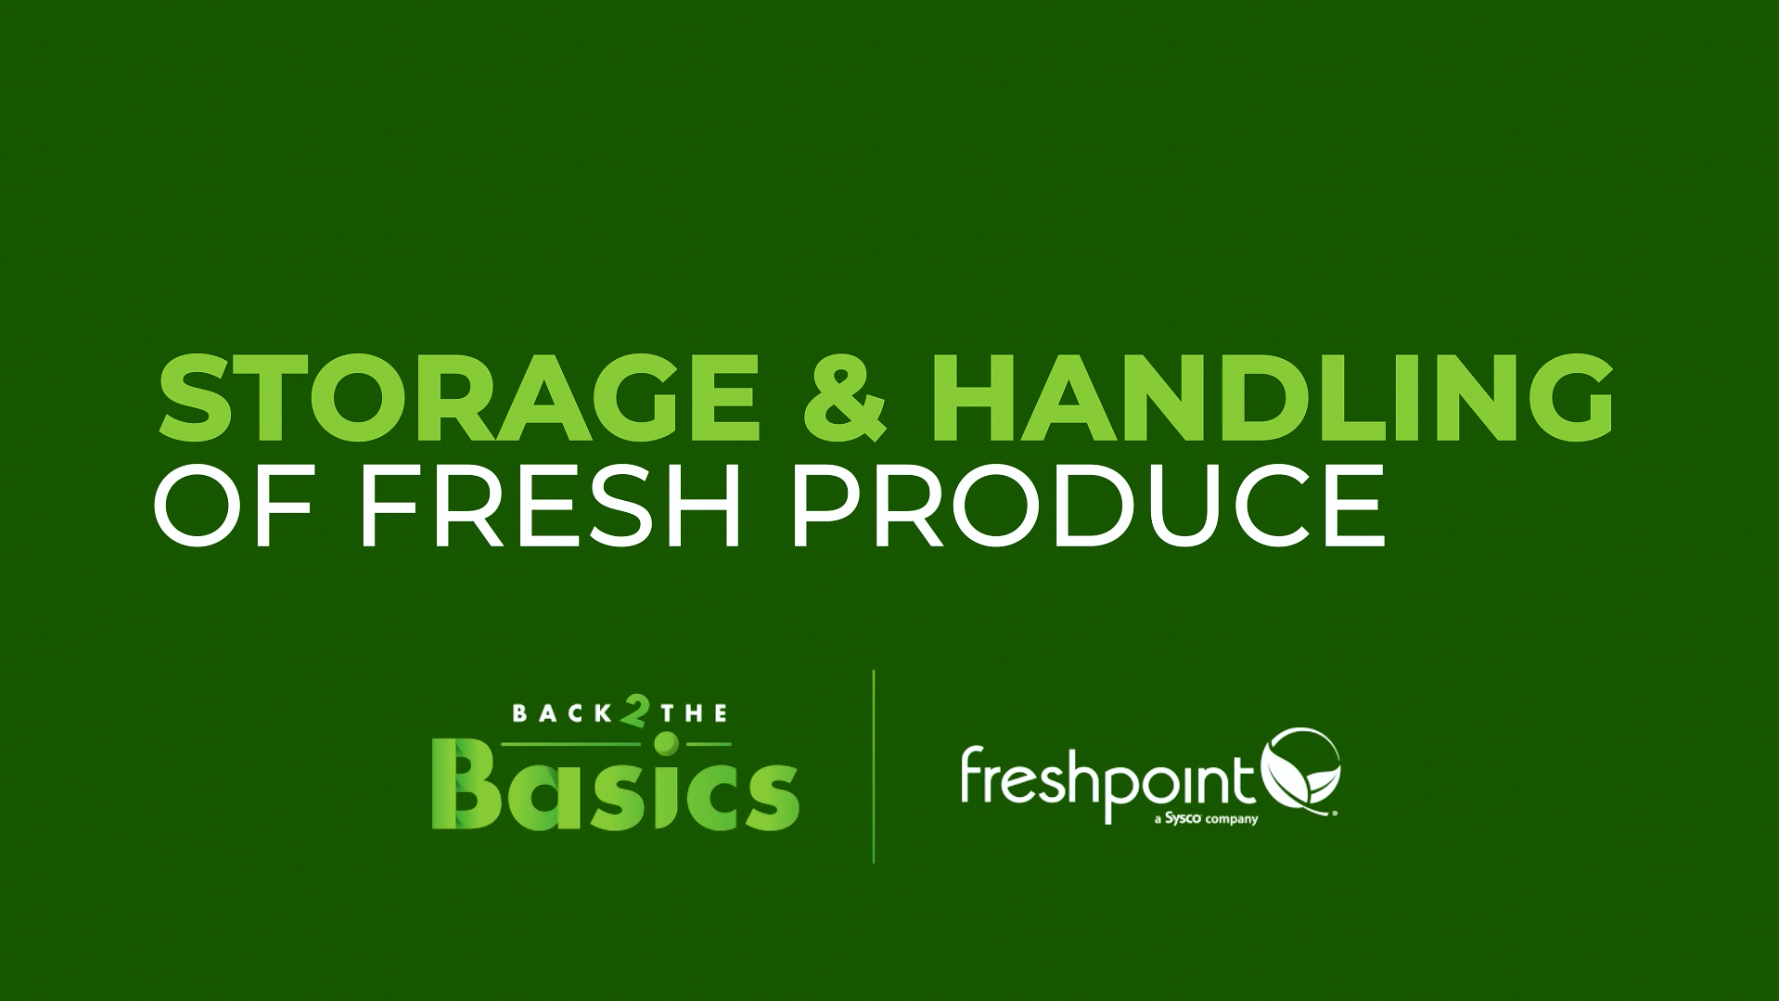 Cooler-storage hints-freshpoint-produce